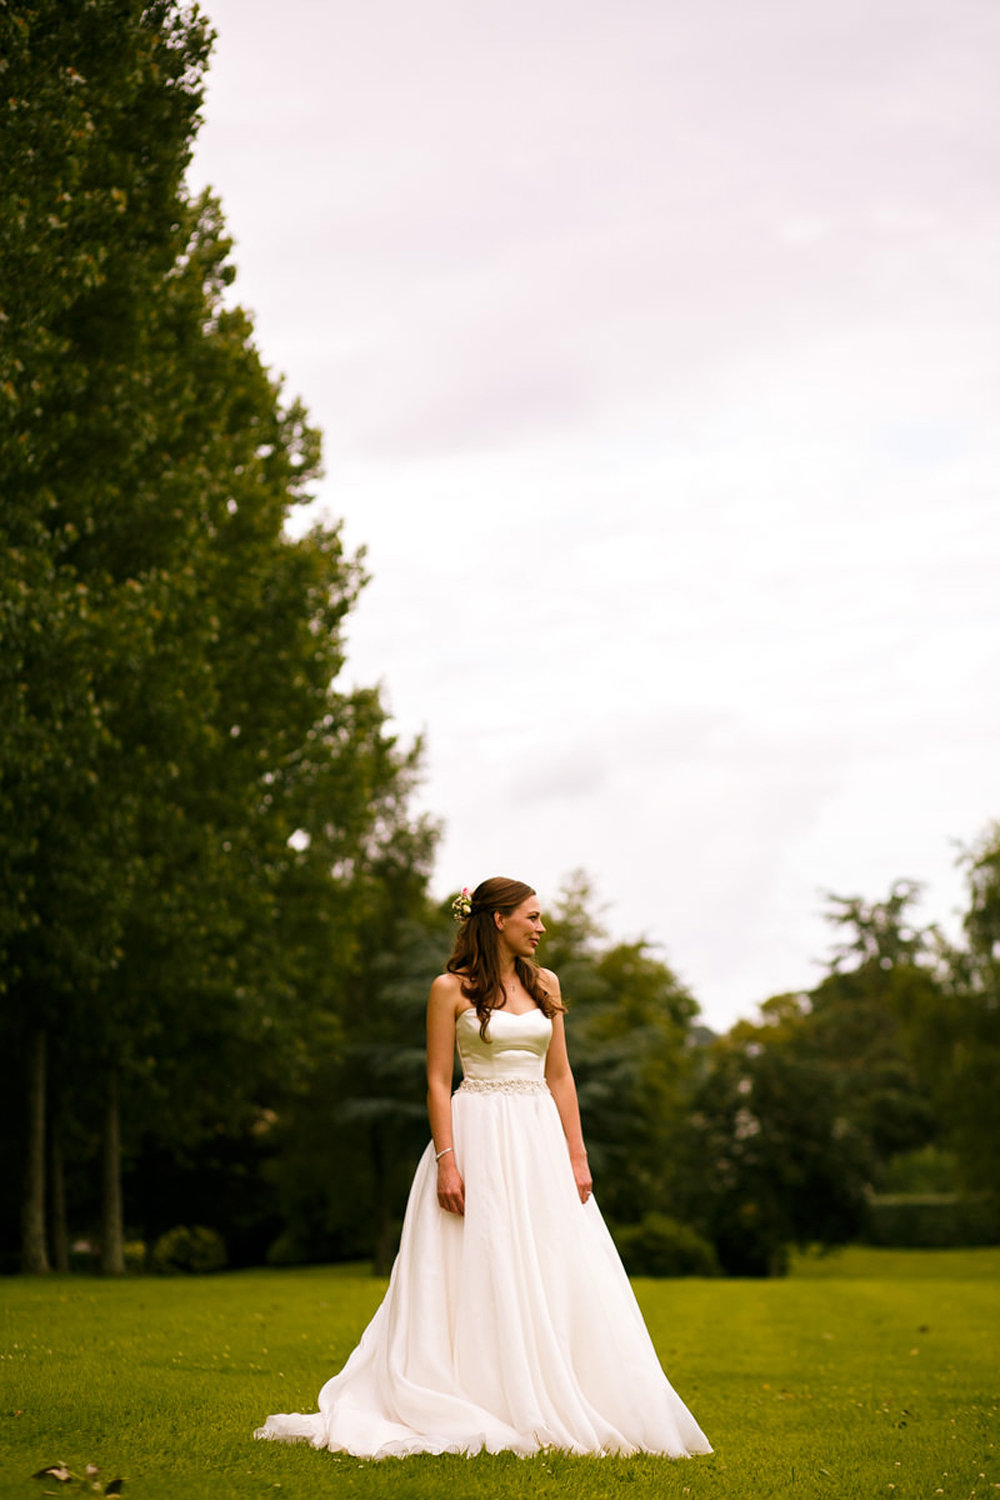 082-somerset-wedding-photographer-matt-bowen-at-the-retreat.jpg